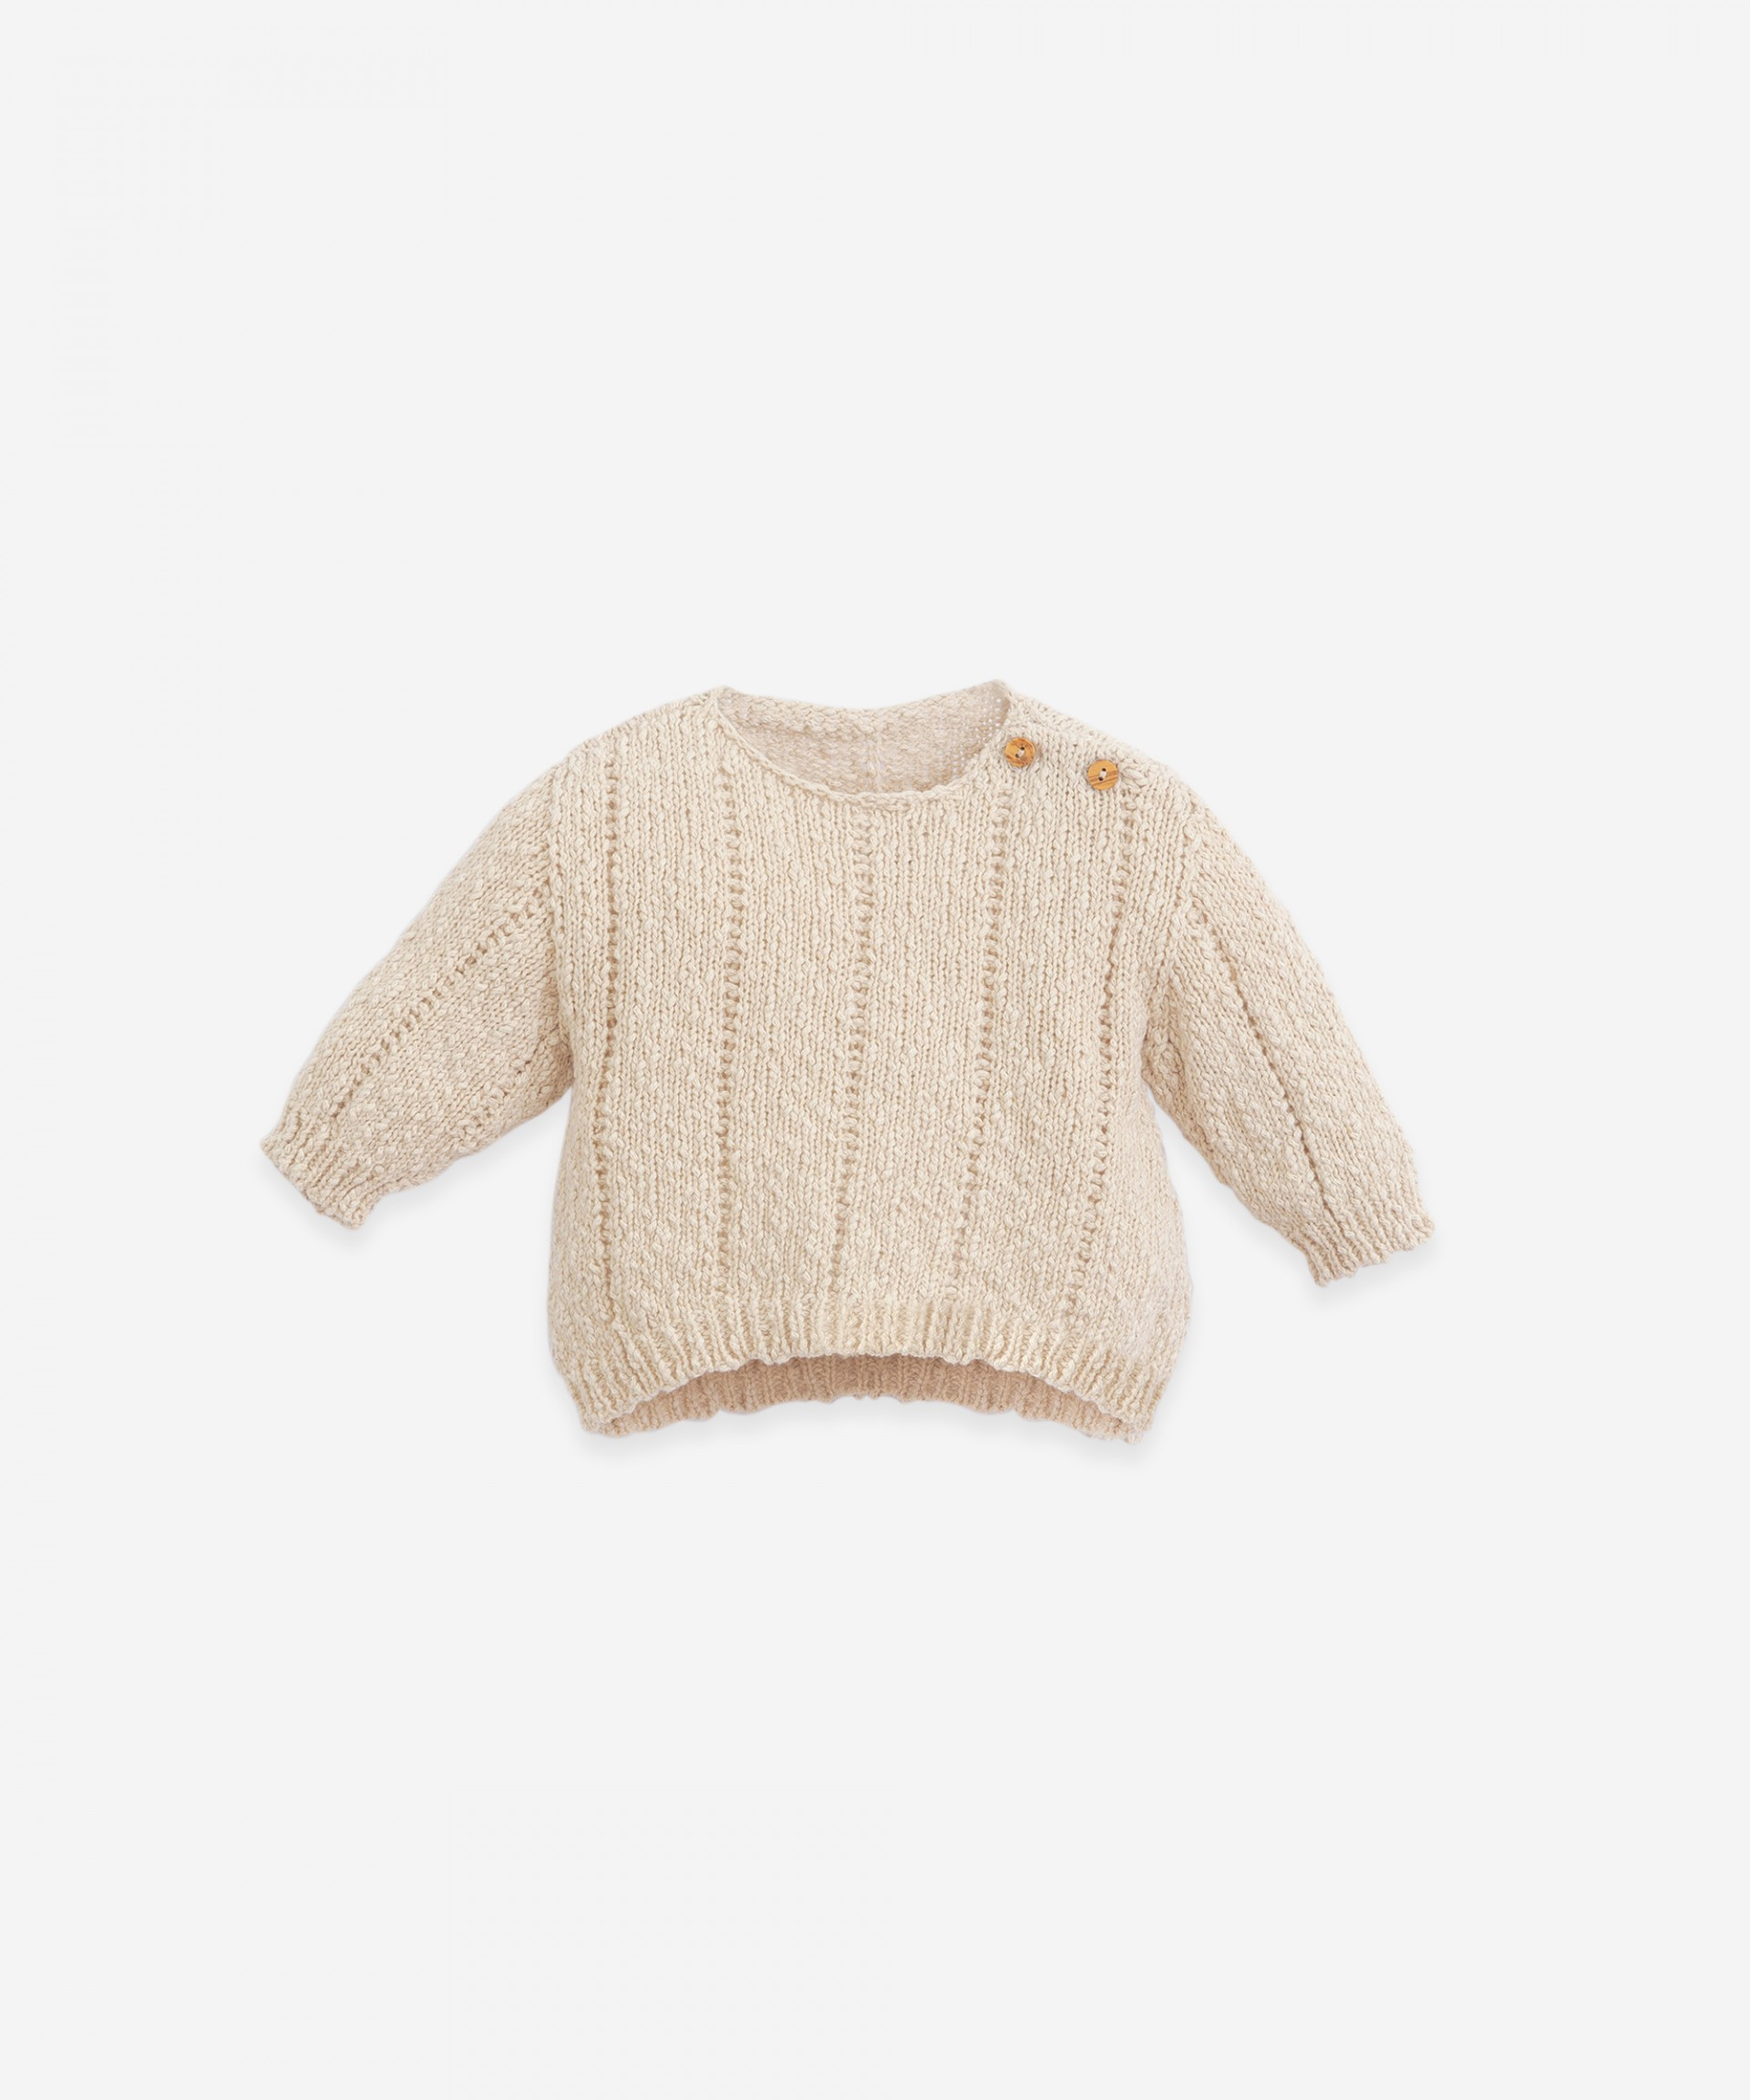 Cotton and linen jersey | Botany